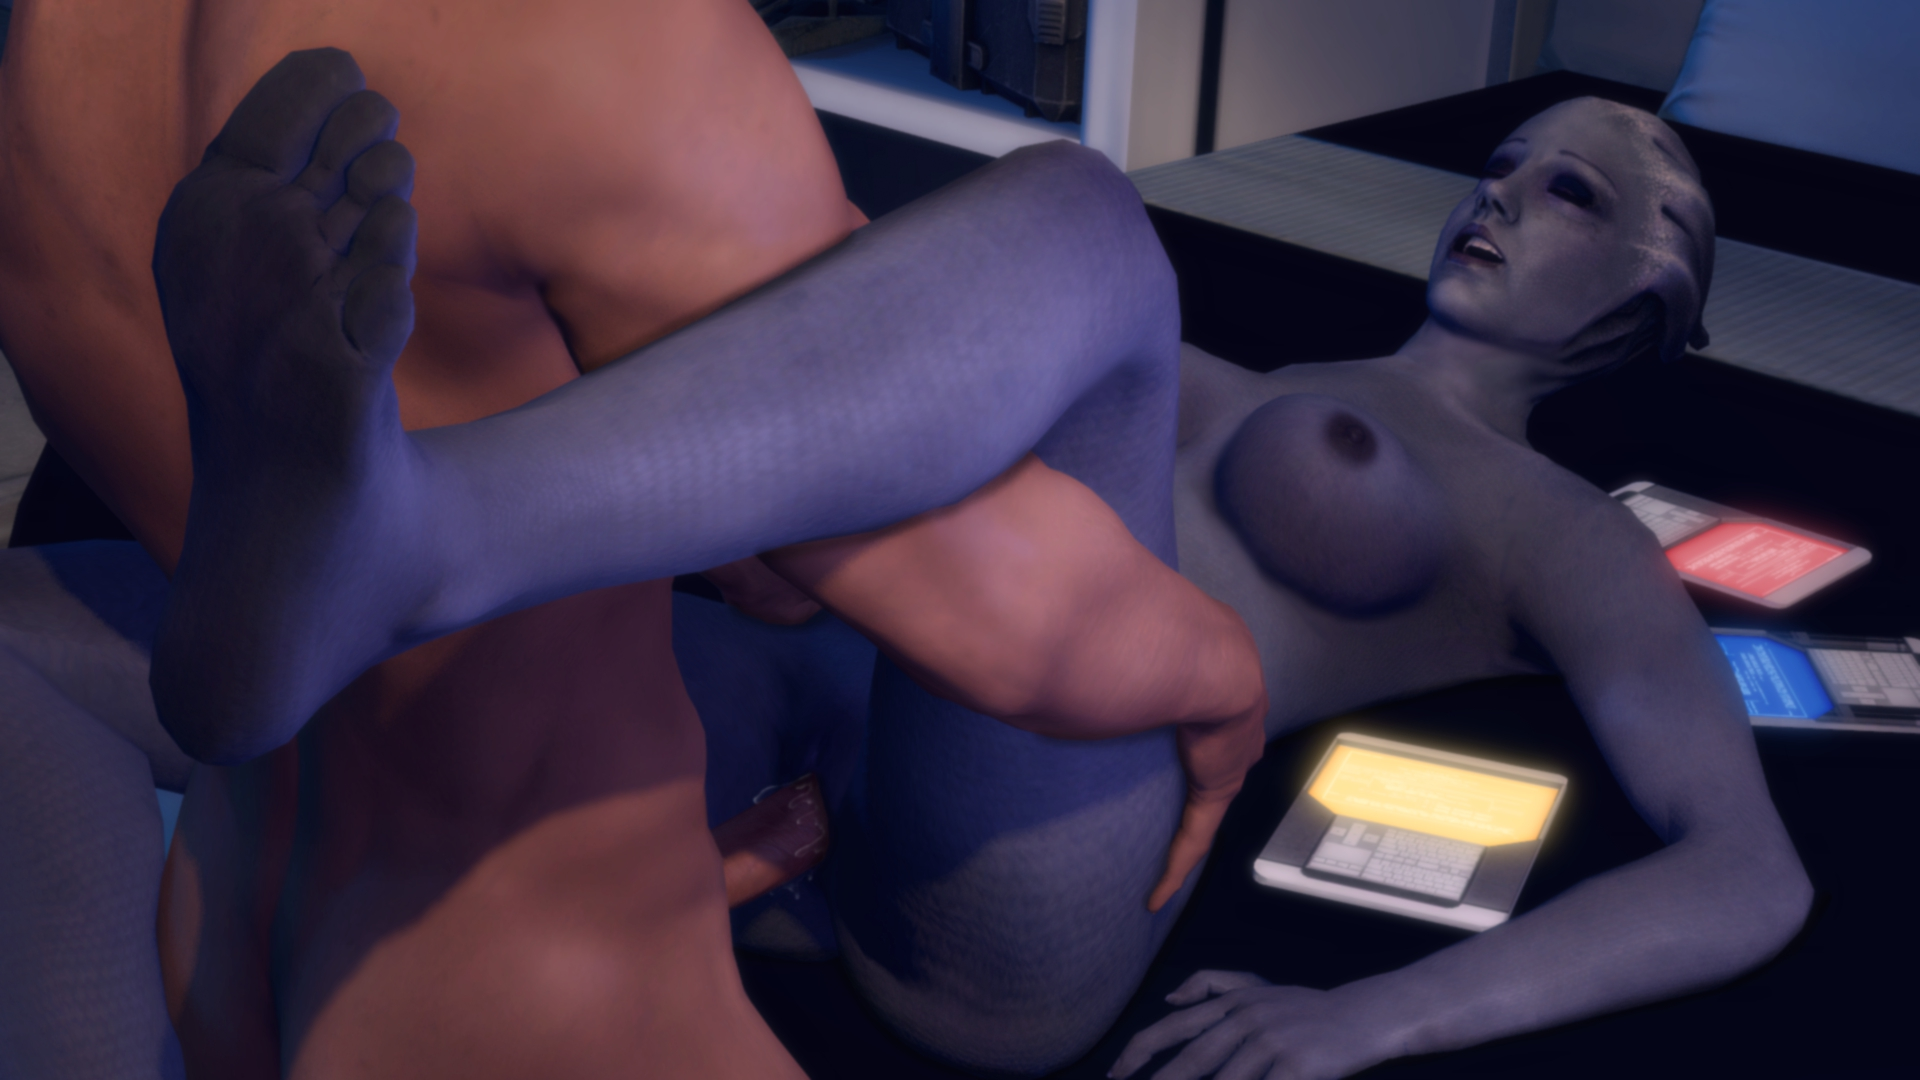 Hot mass effect porn pics sex video